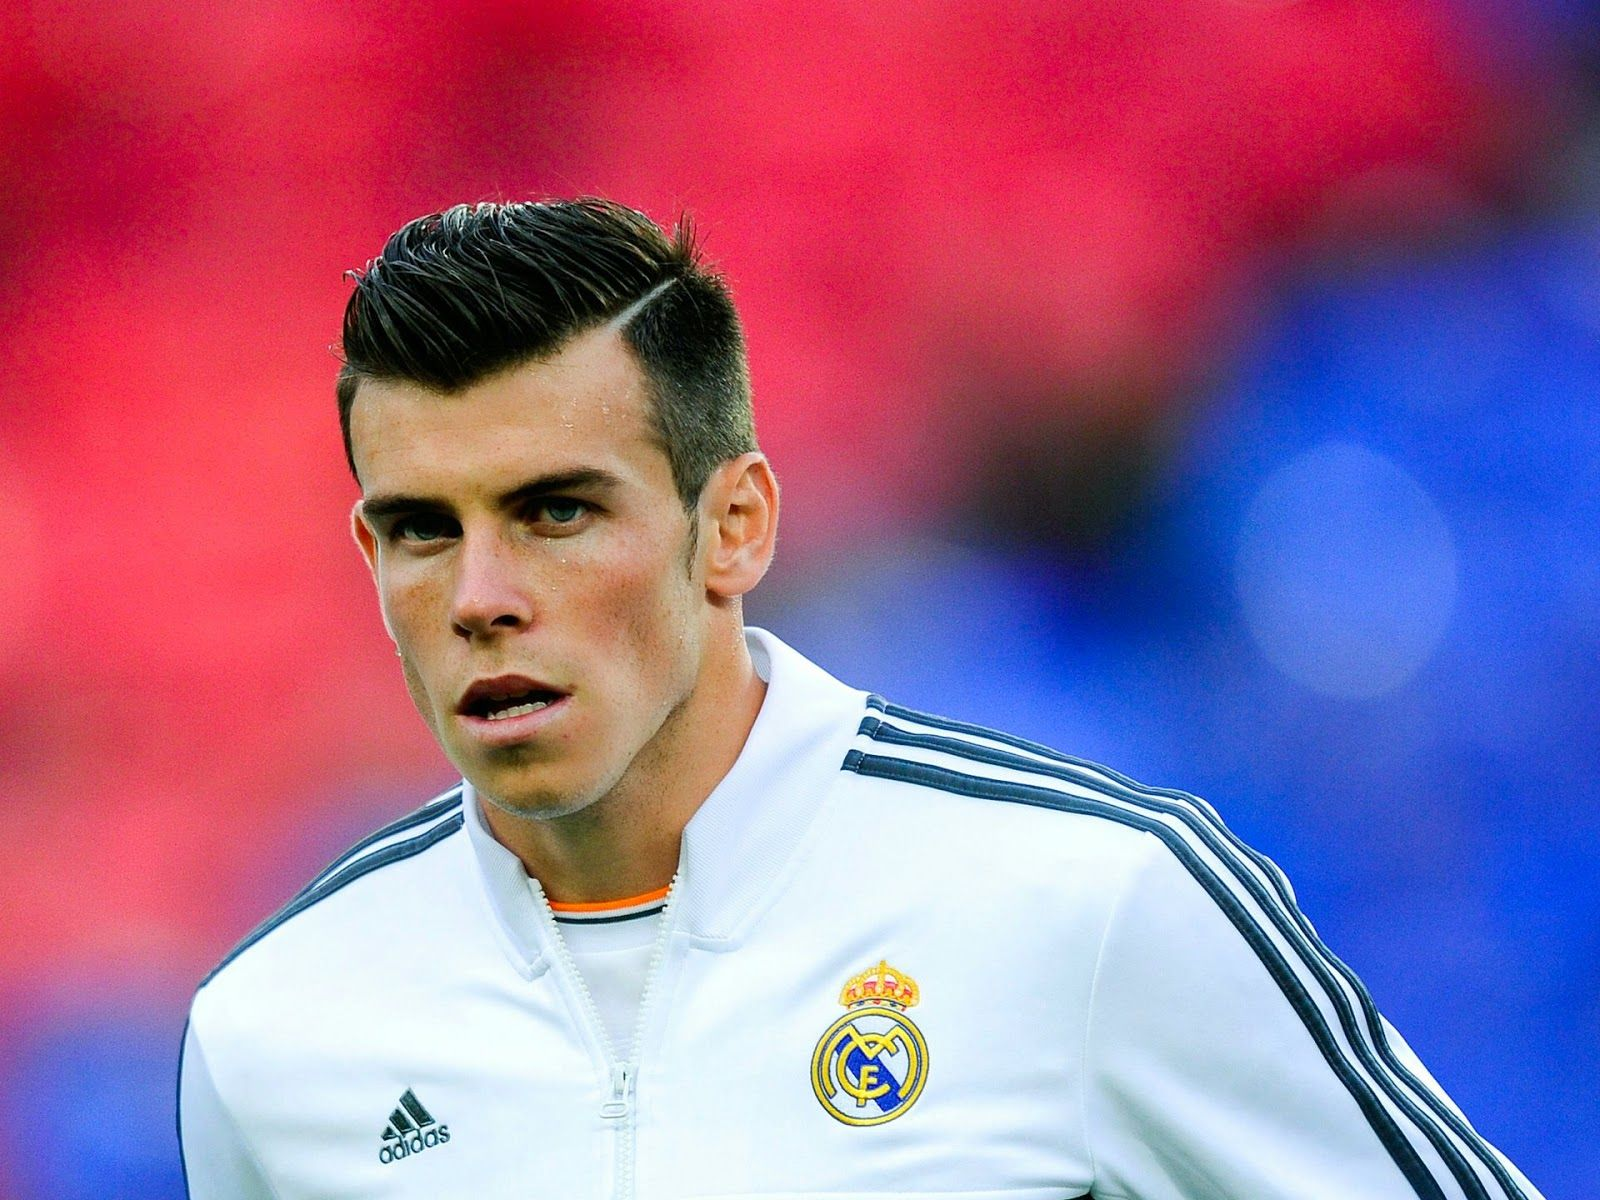 popular mens haircuts gareth bale haircut search s o c c e r b o y s 9503 | f5b84b5a81b8d62a9503cd5d97fc34df